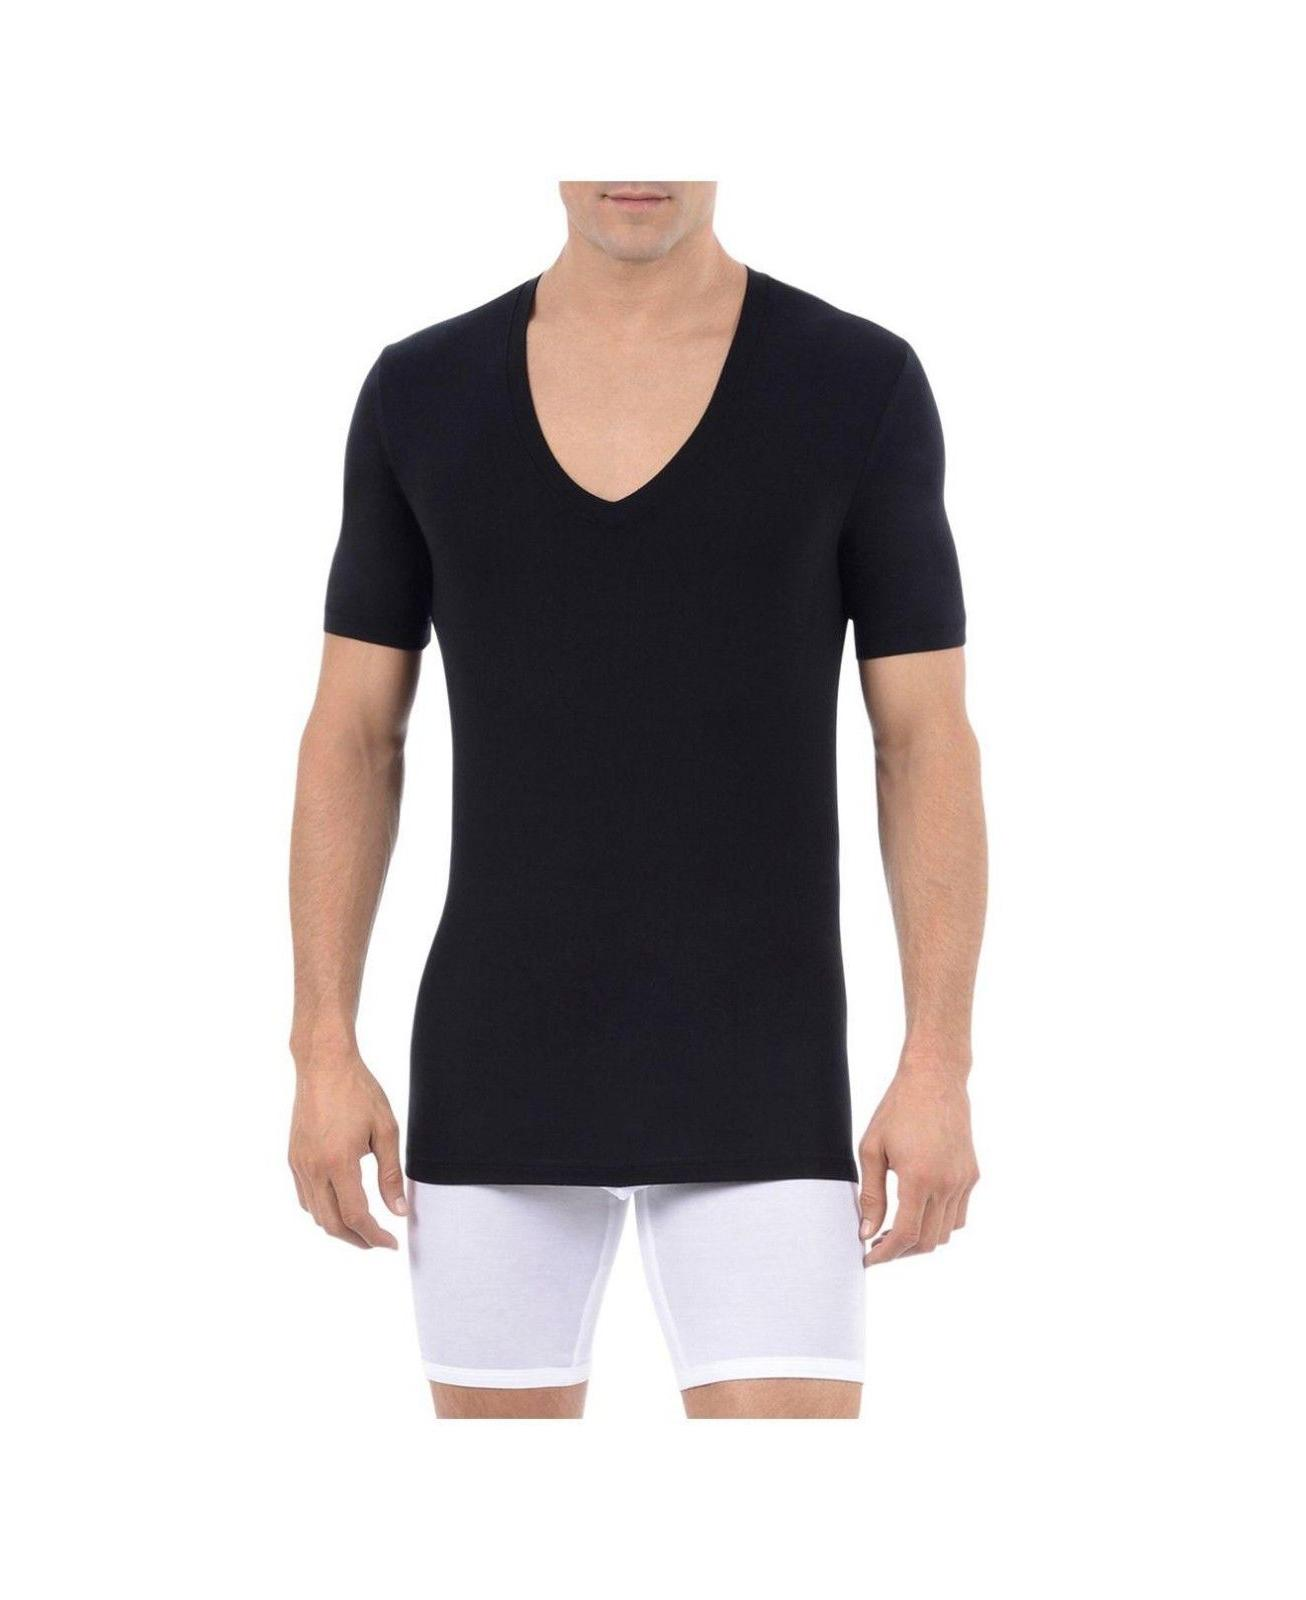 Tommy Cool V-Neck Mens Undershirt New